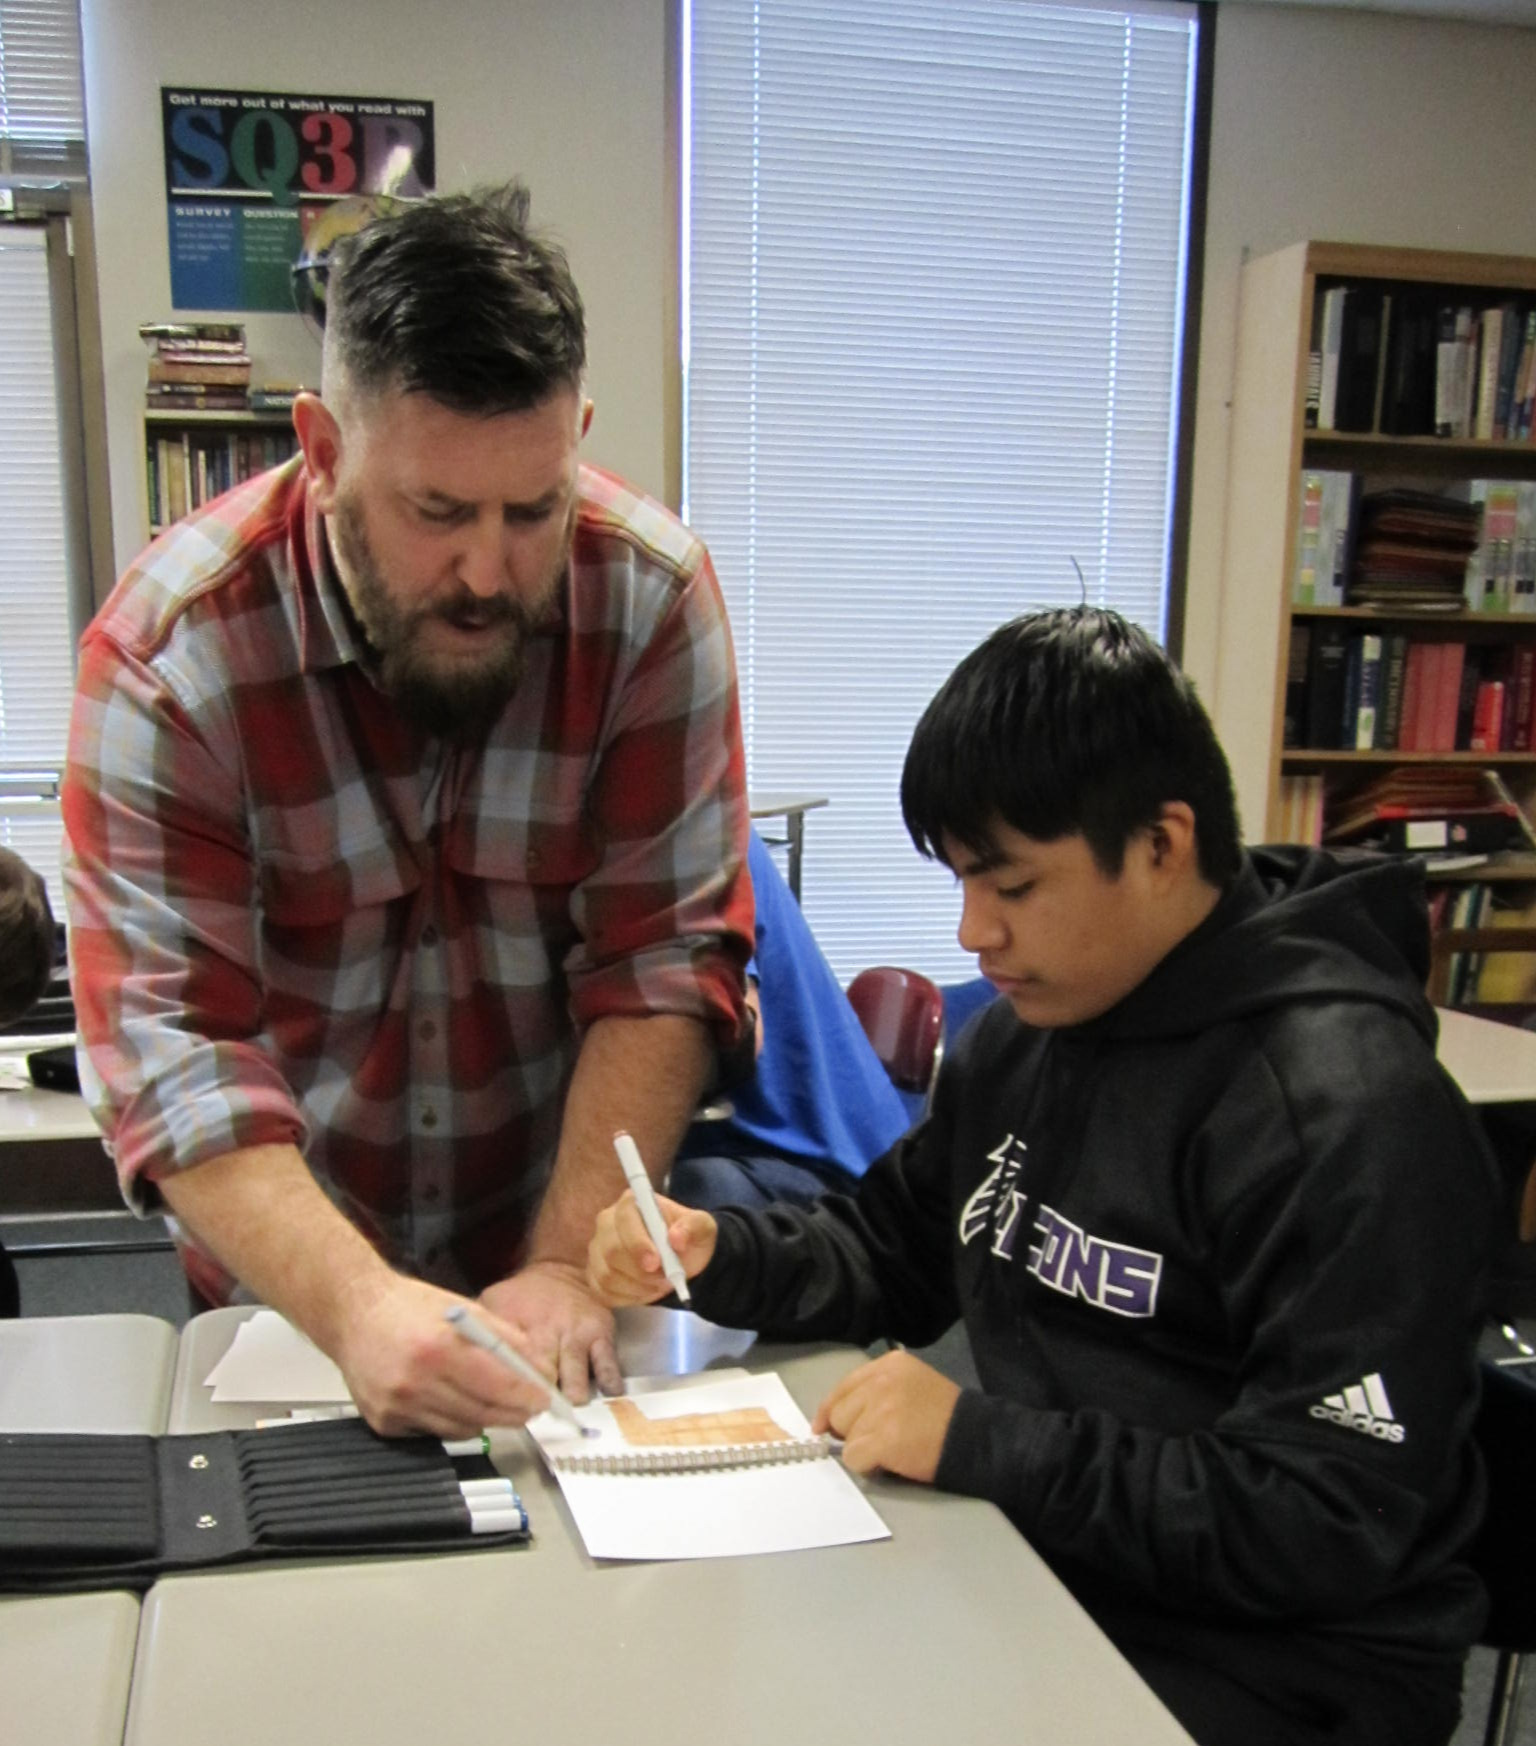 Imagination International Graphic Artist Matt Brundage shows some of his drawing techniques to Center Point students.